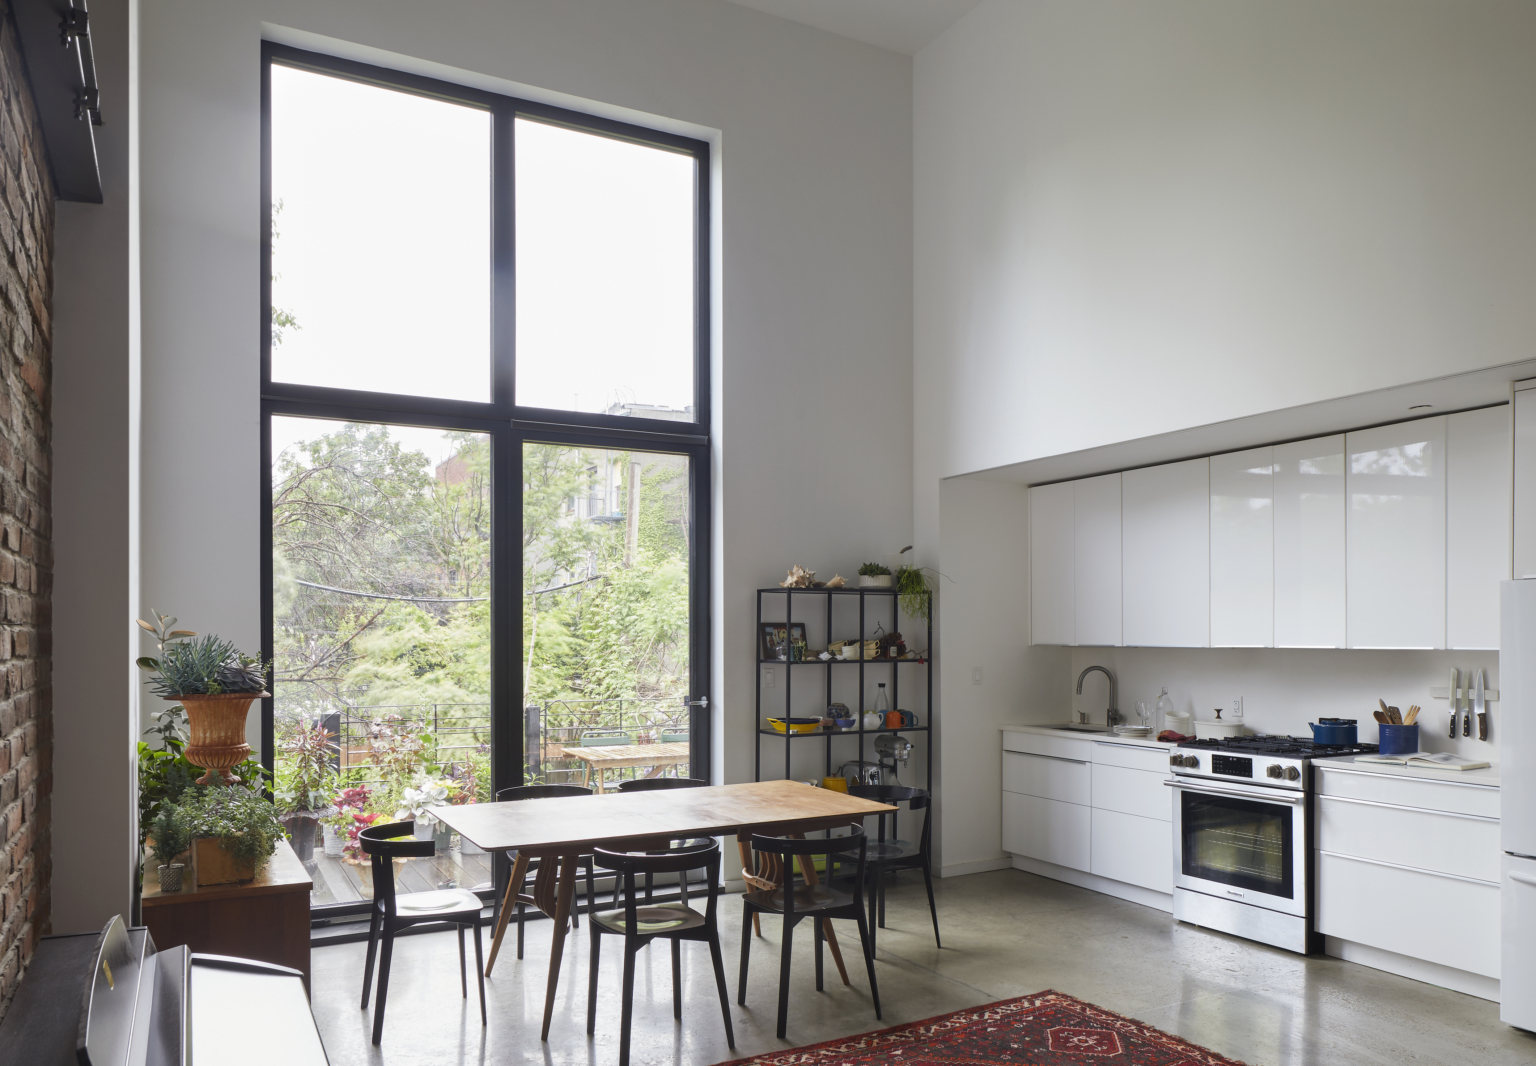 A Flood-Proofed Brooklyn Rebuild on a Budget, Ikea Kitchen Included